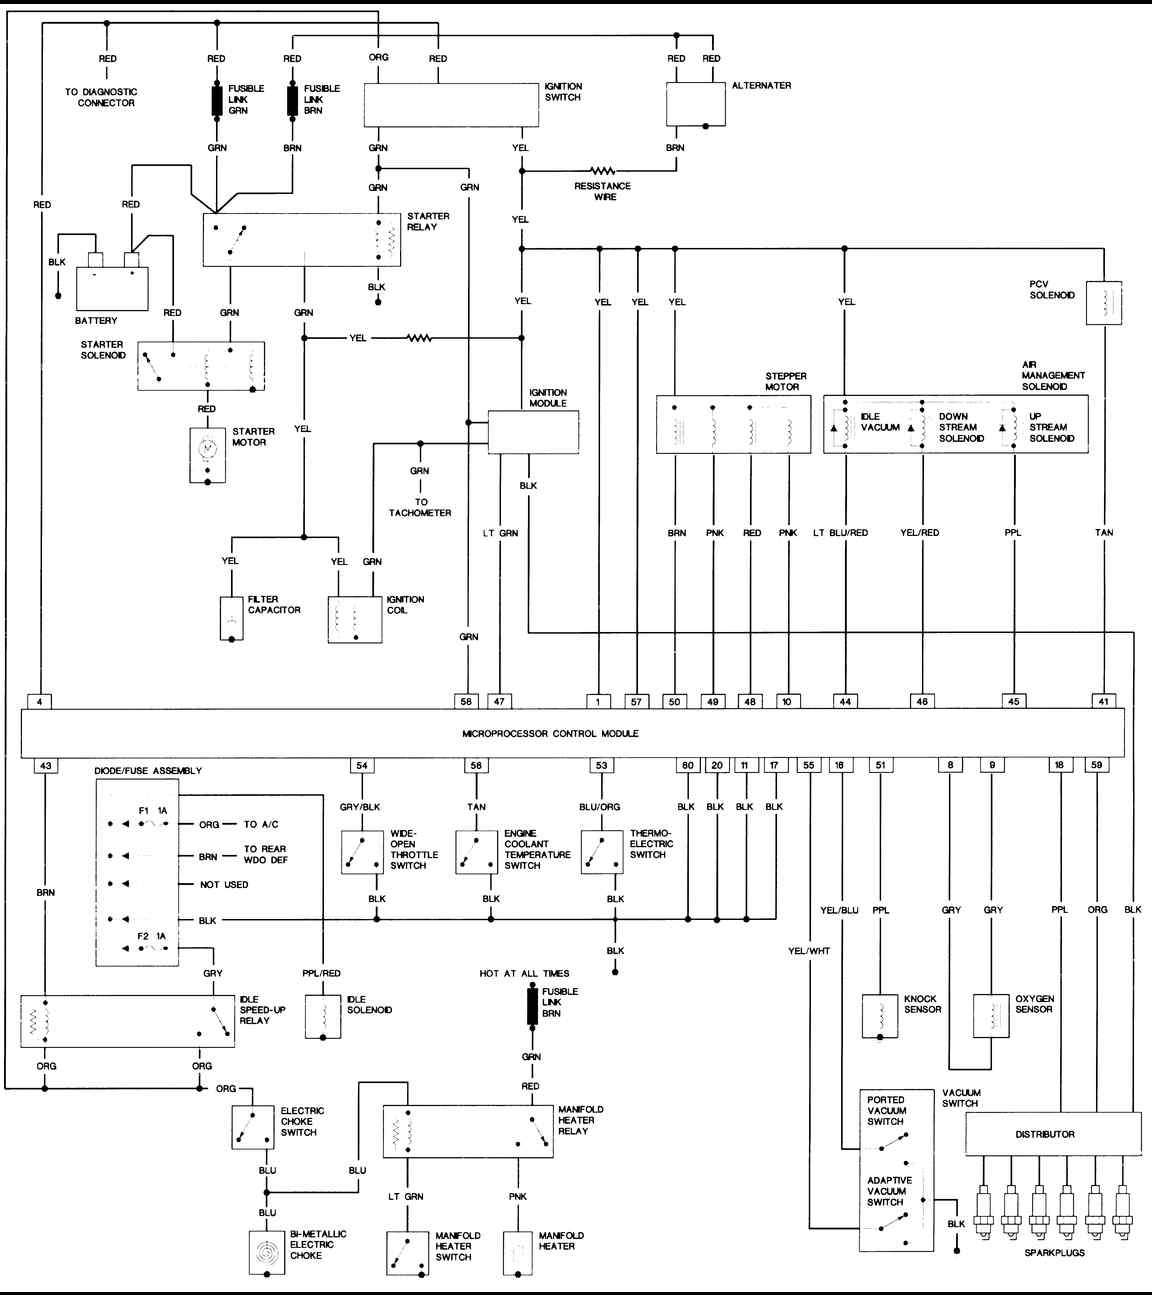 1987 jeep wrangler 4 2l engine large freeautomechanic rh freeautomechanic com 2007 jeep wrangler radio wiring diagram 2007 jeep wrangler wire diagram